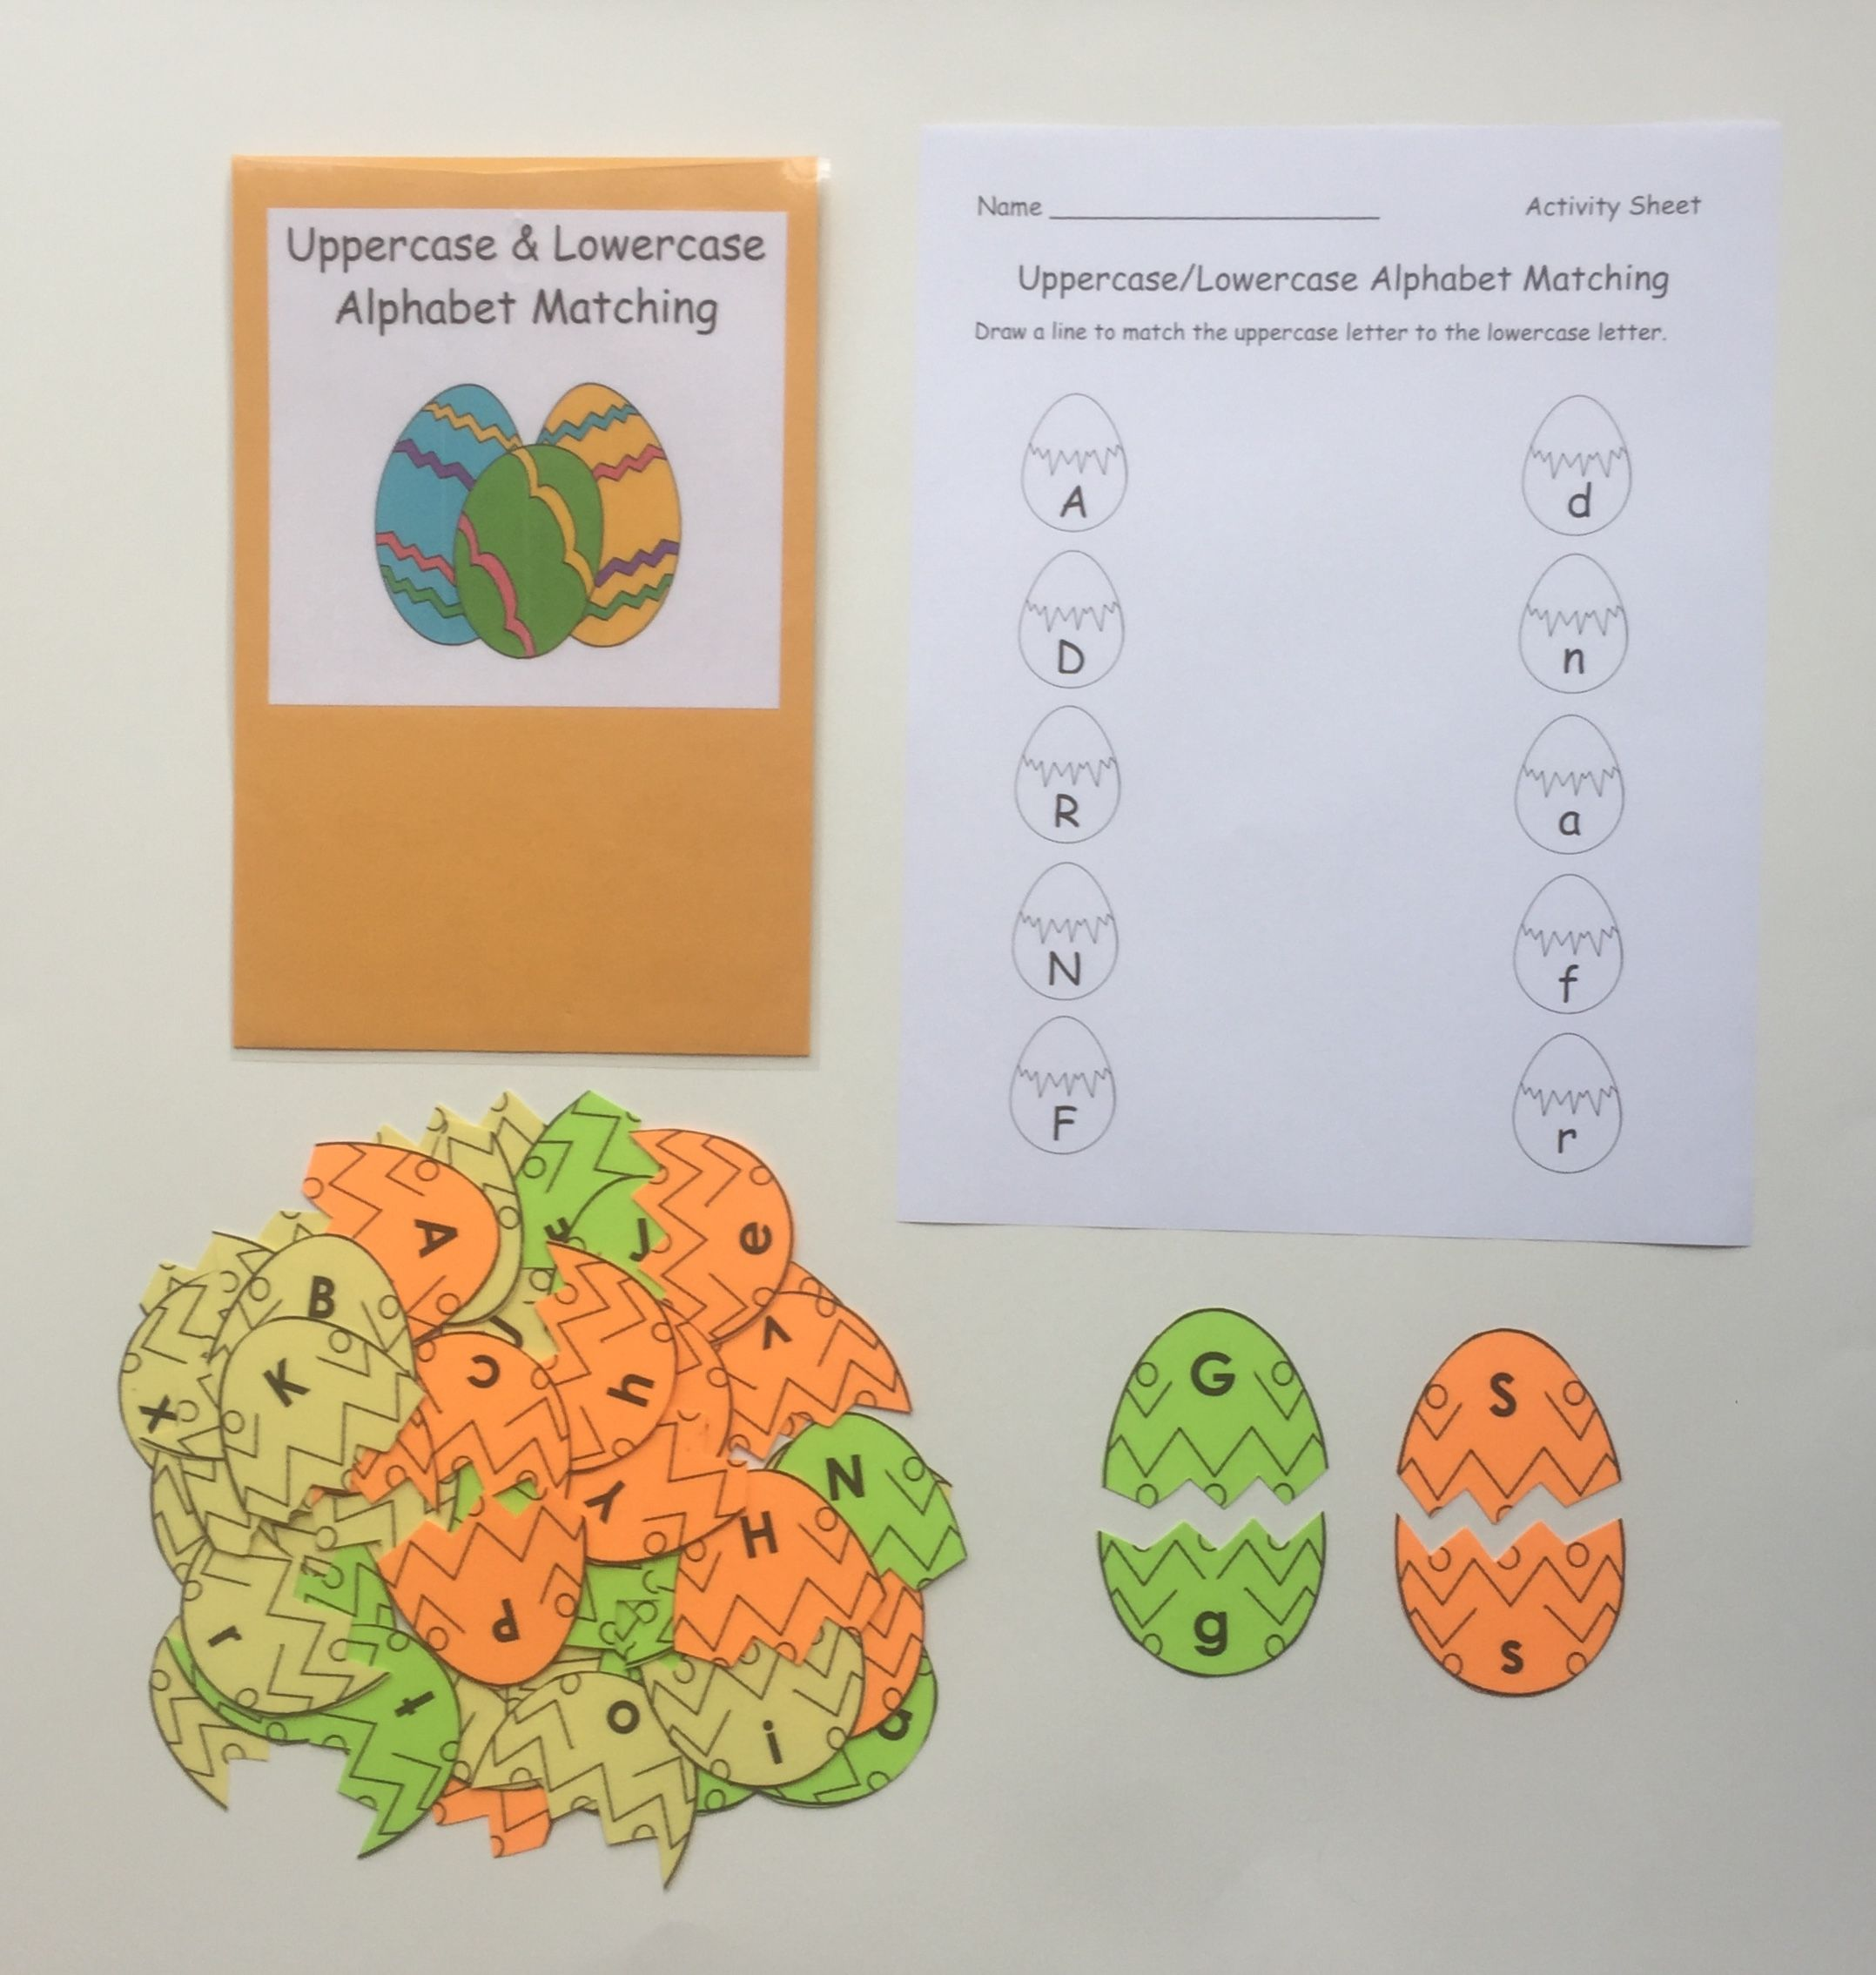 Alphabet Letter Matching Help Students Practice And